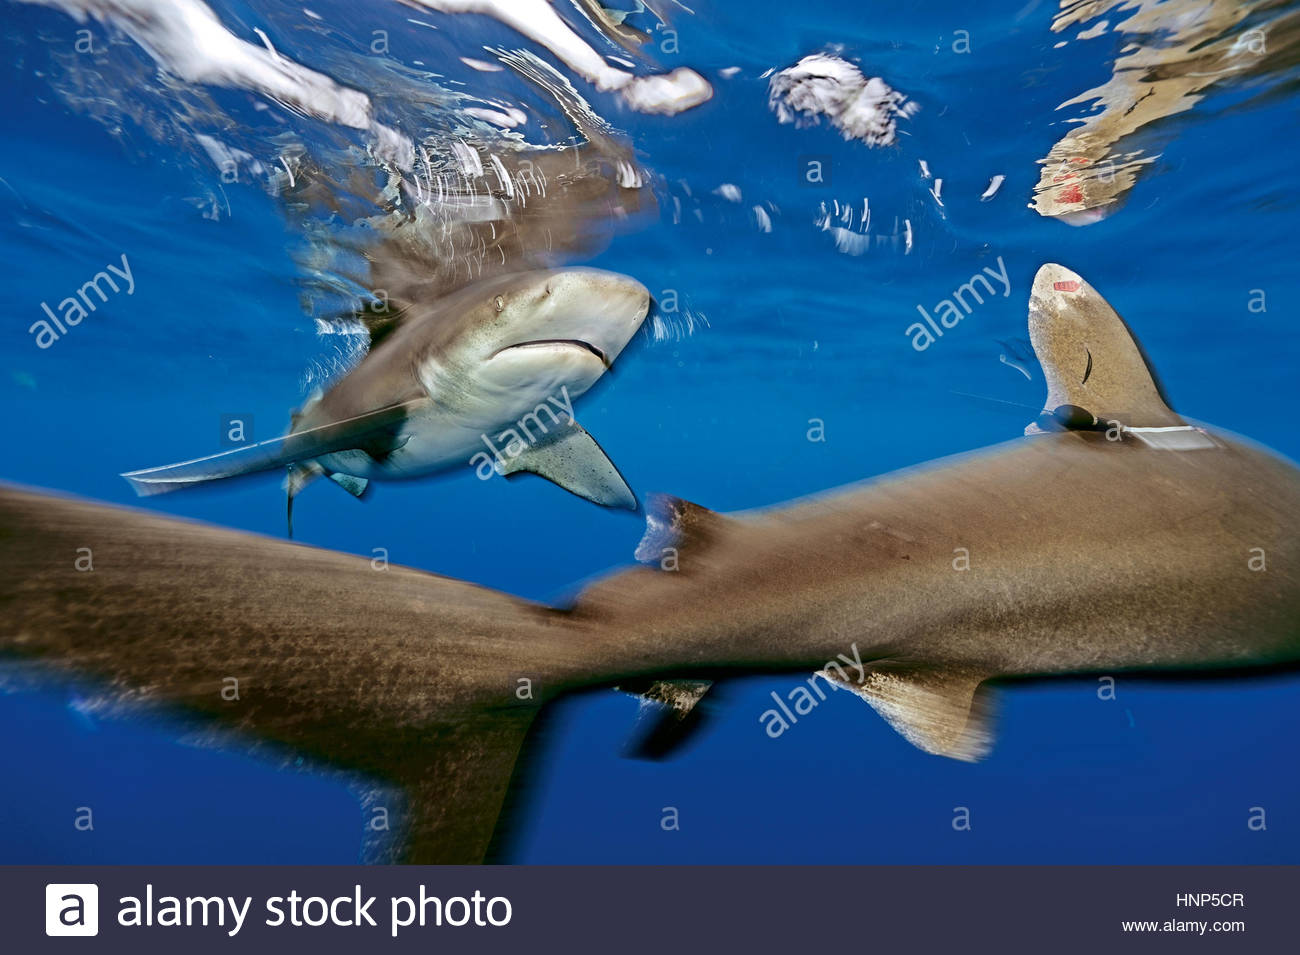 An oceanic whitetip shark, Carcharhinus longimanus, with satellite and identification tags, swims in the waters - Stock Image